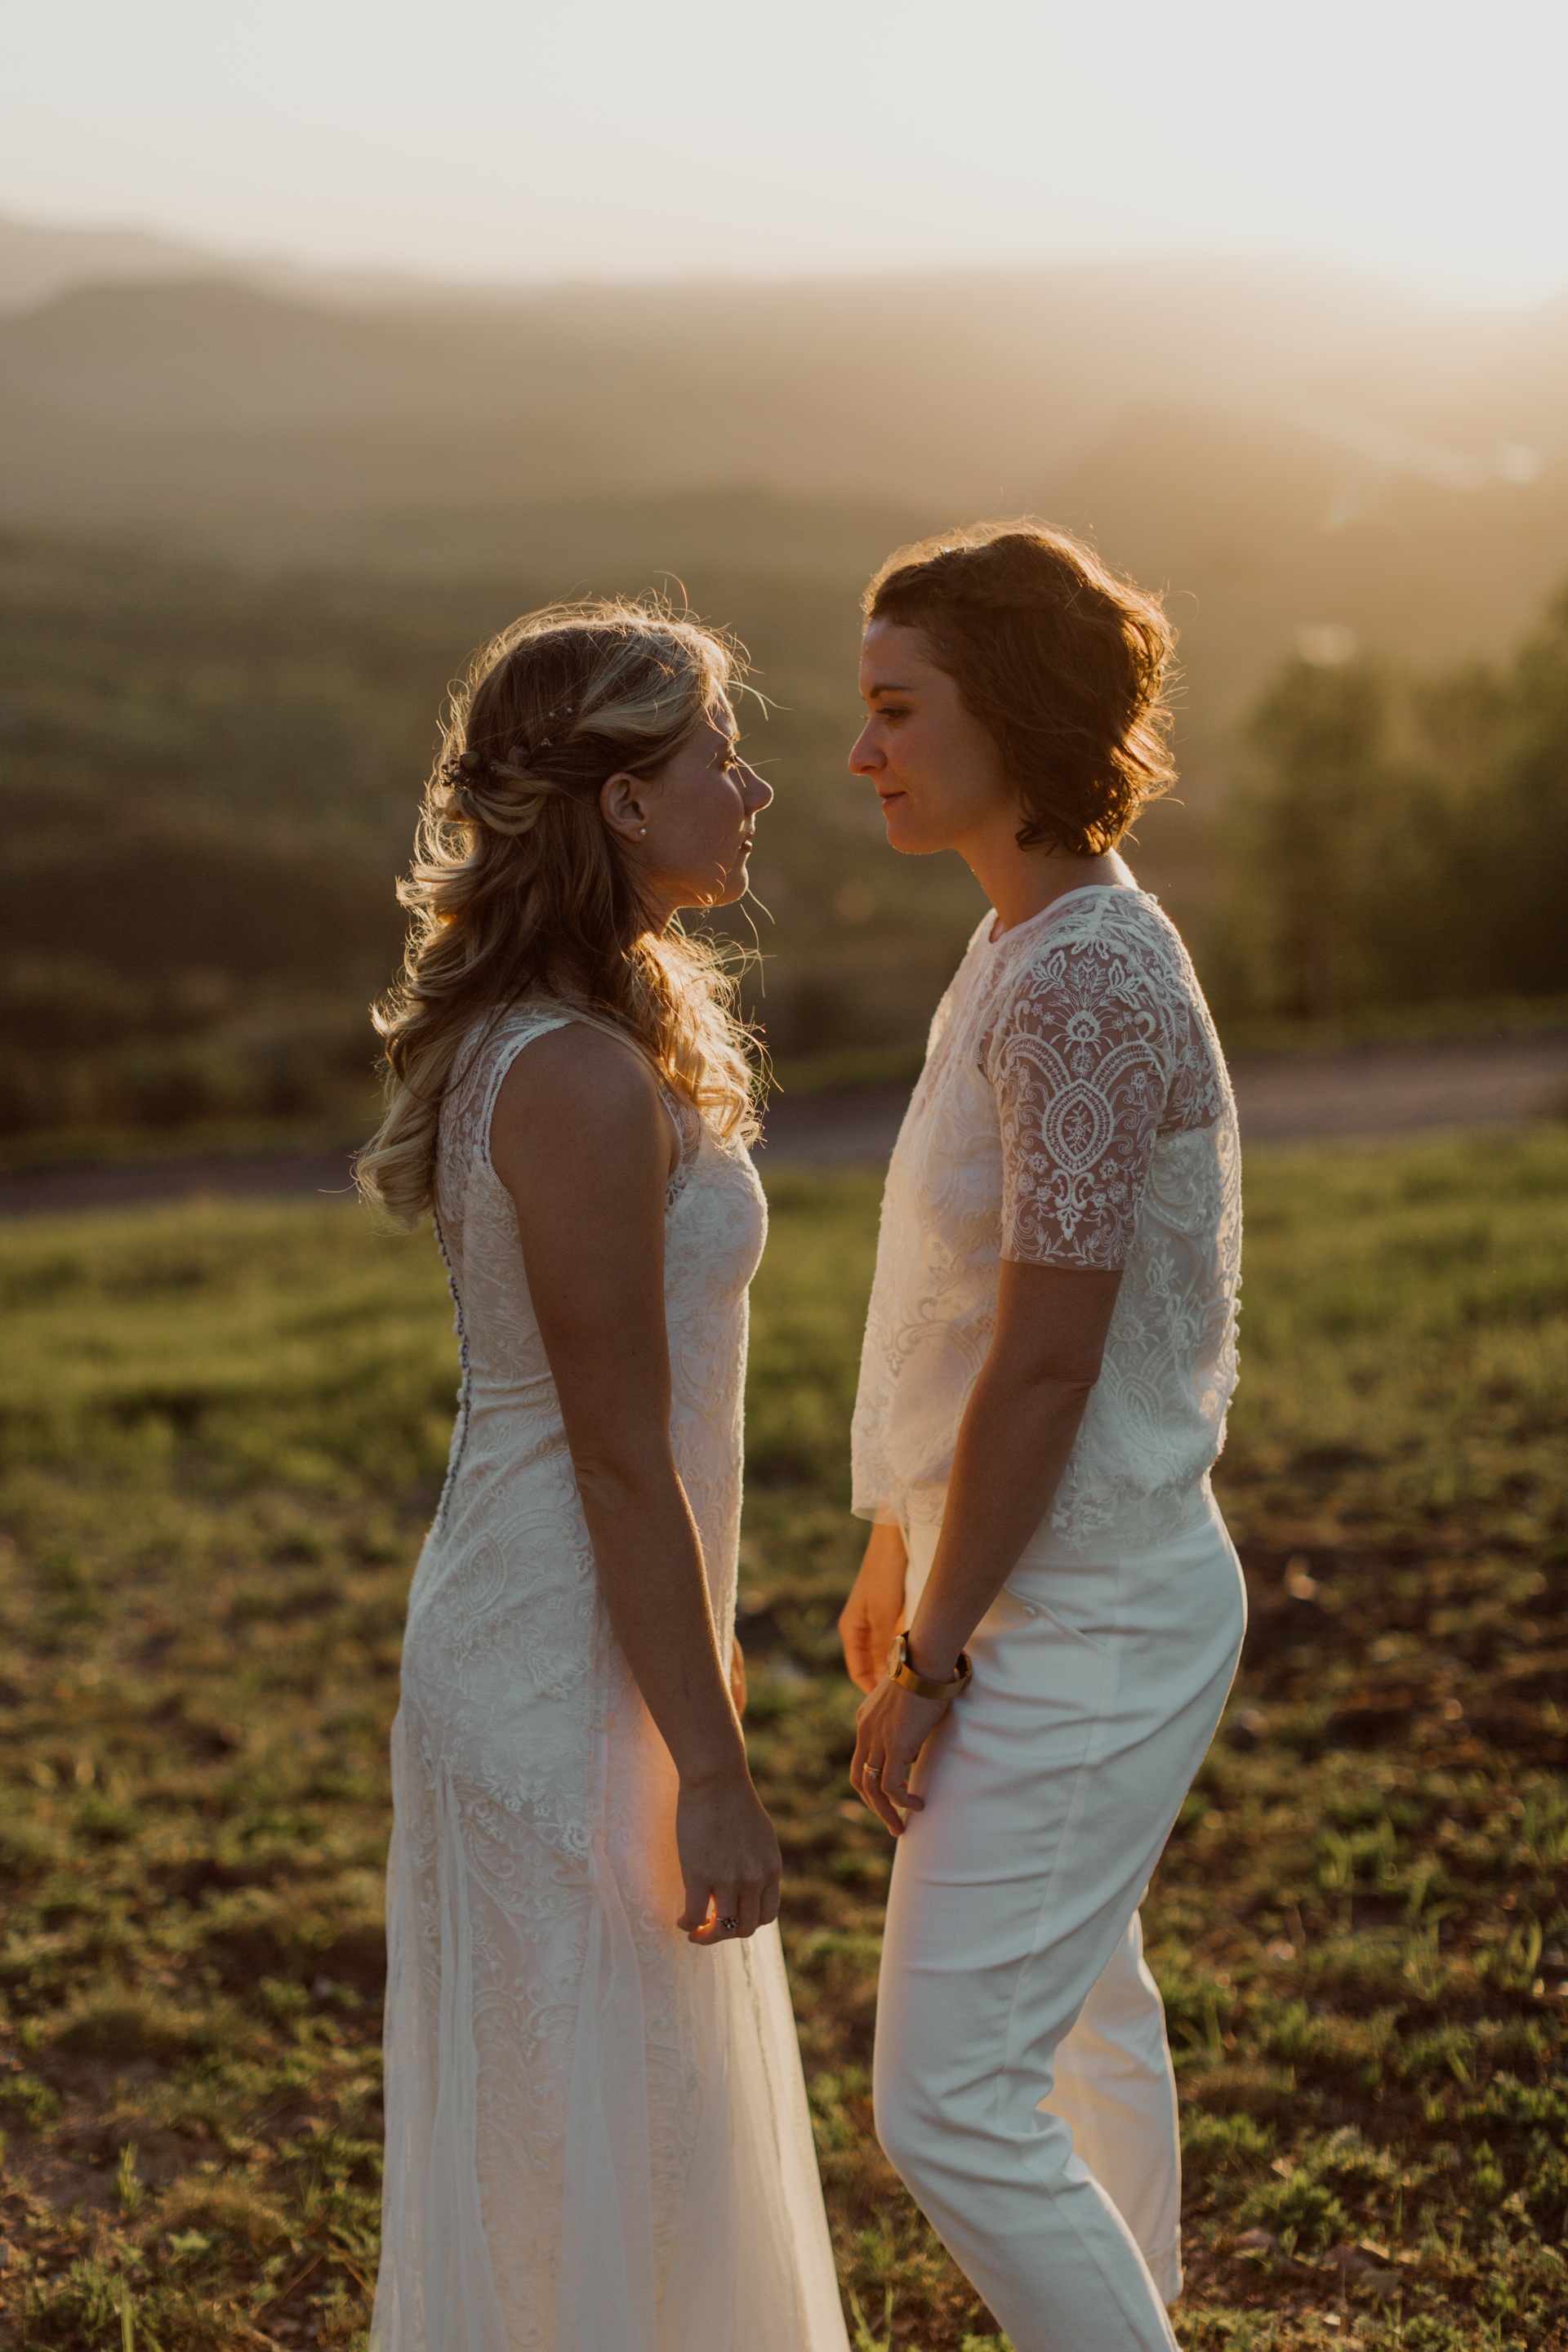 cedarandpines-intimate-san-sofia-telluride-colorado-wedding-47.jpg